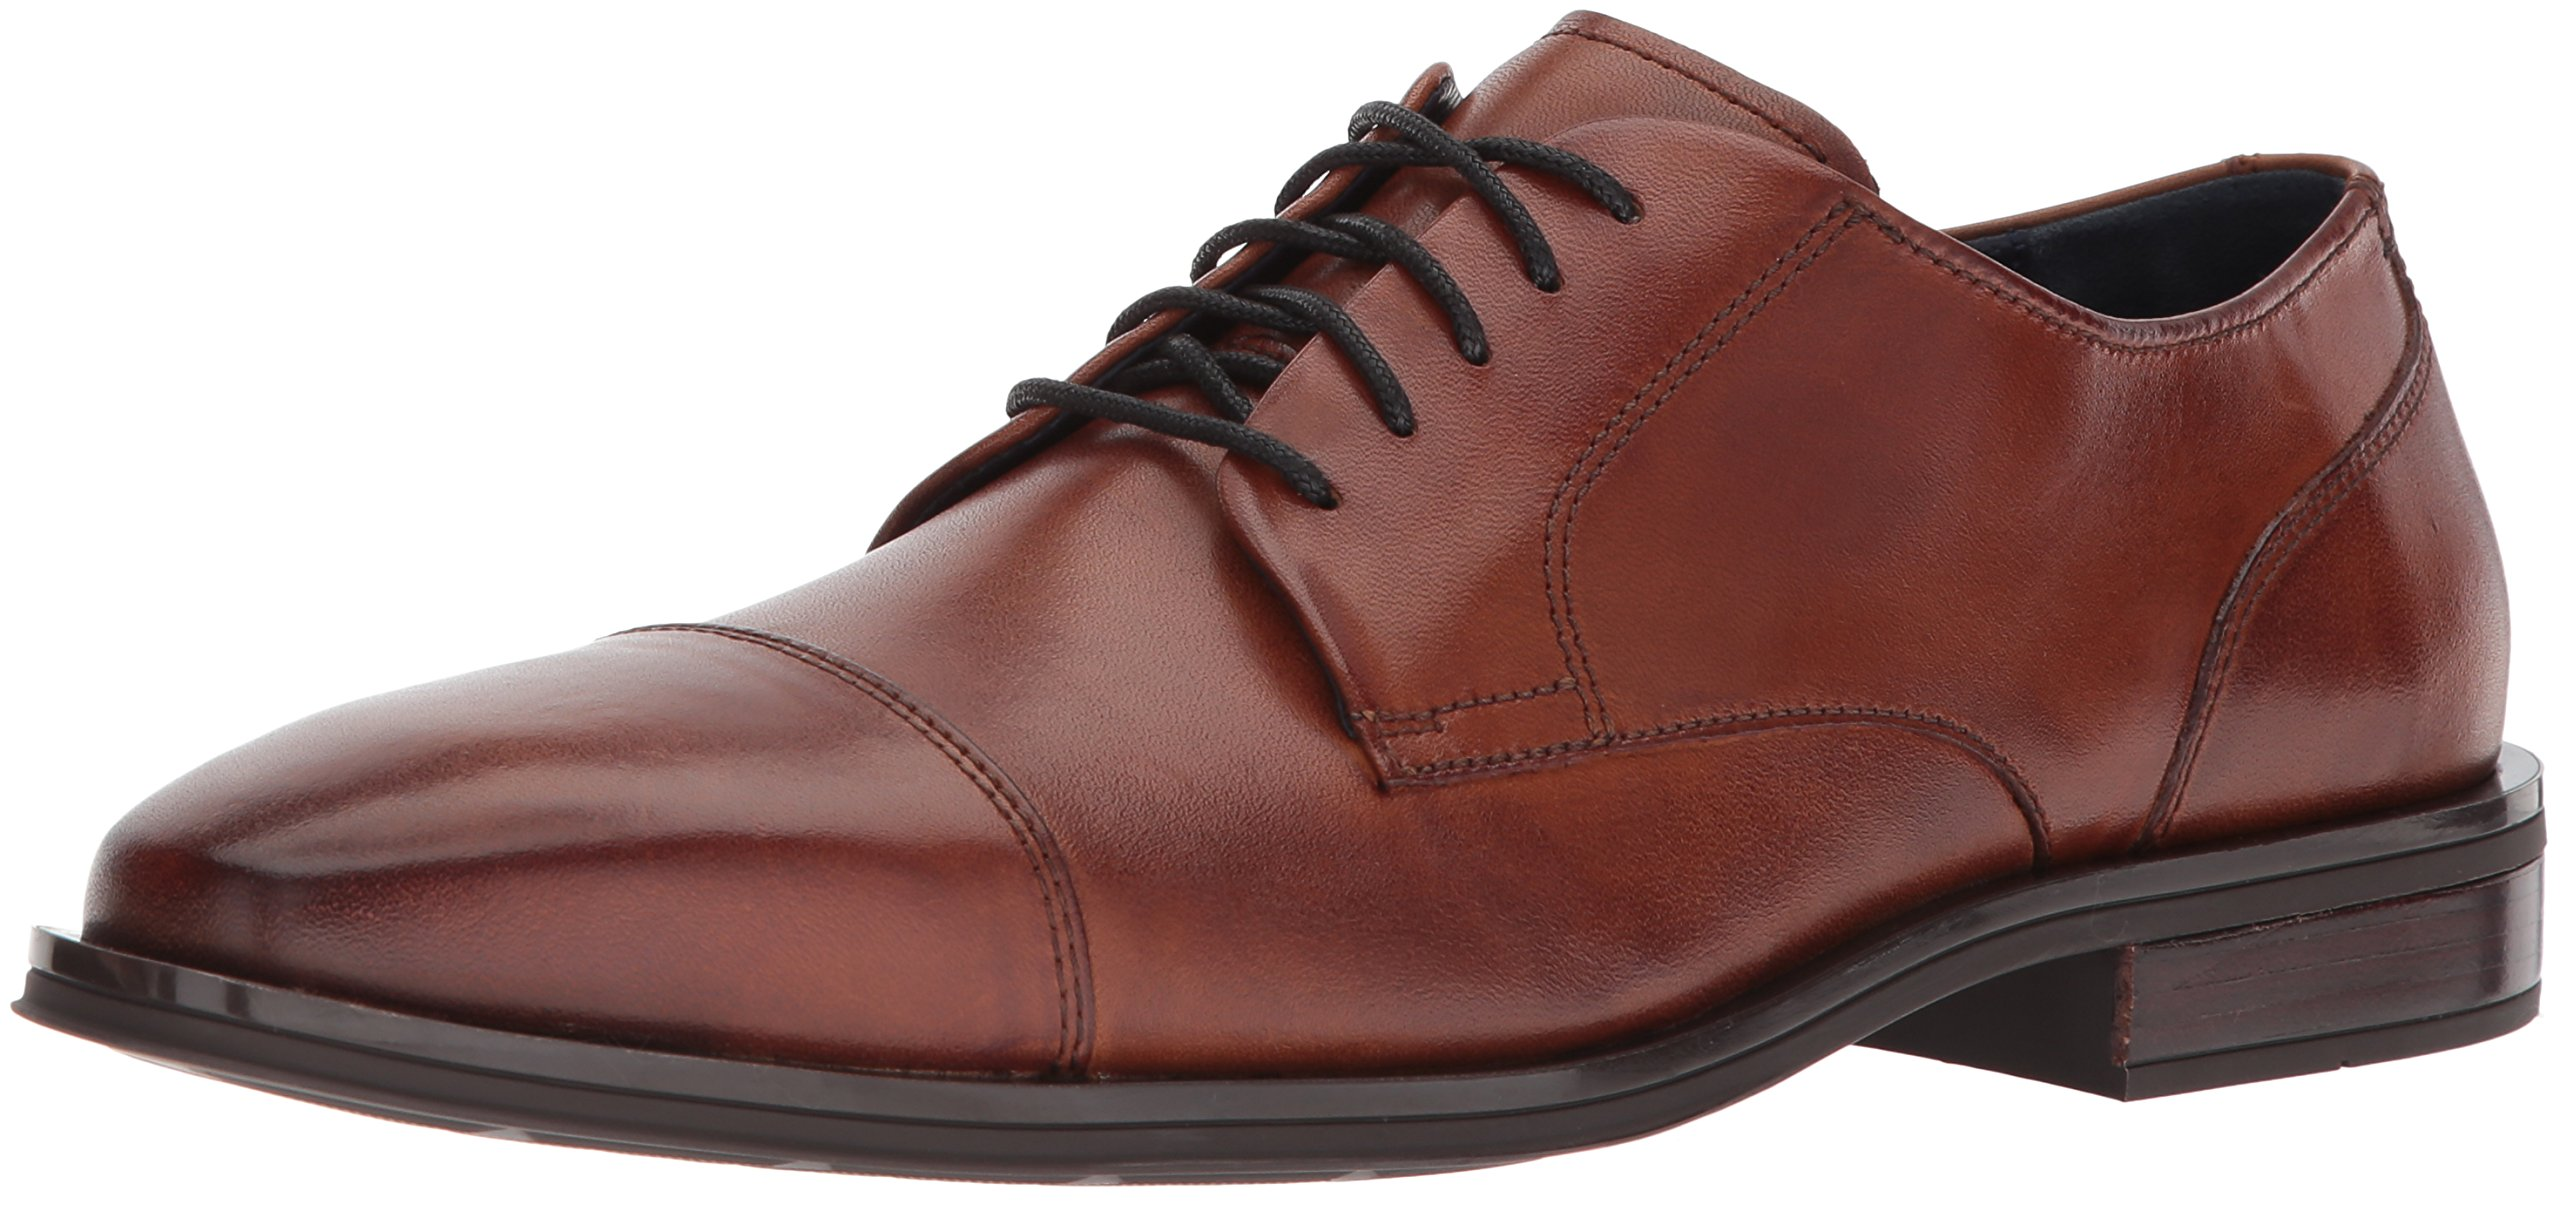 Cole Haan Men's Dawes Grand Cap Toe Oxford, British Tan, 11 Medium US by Cole Haan (Image #1)